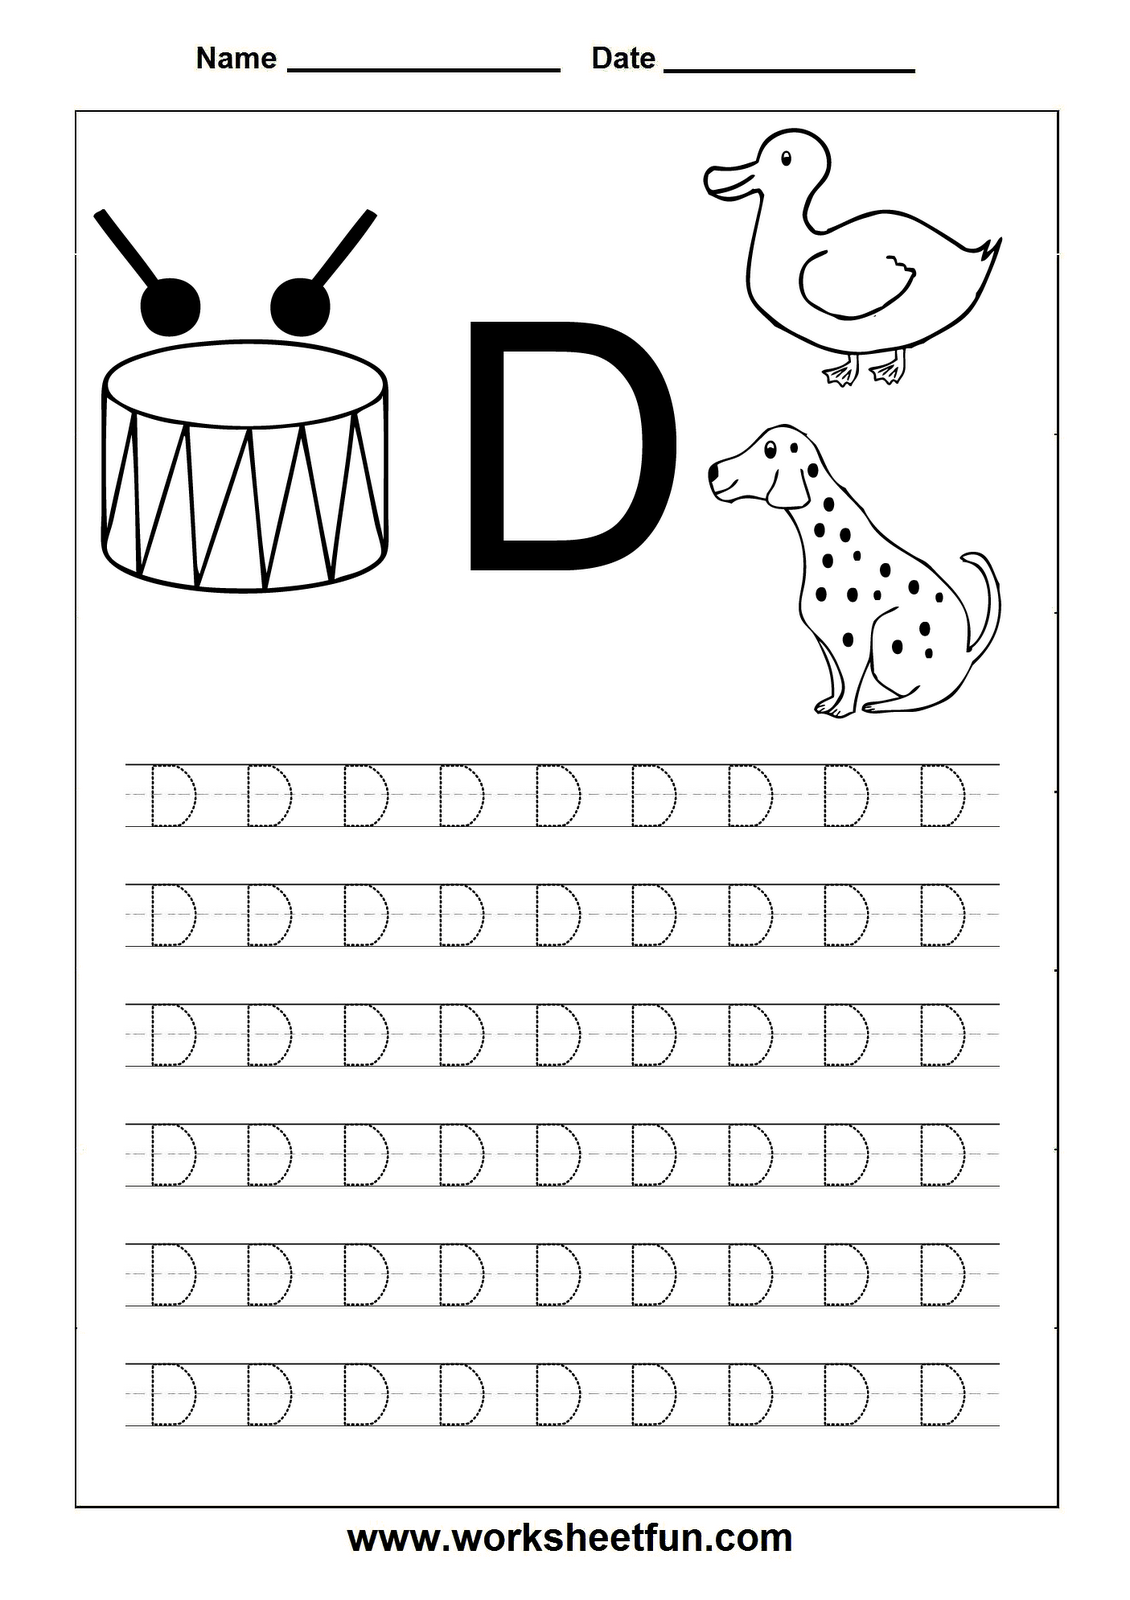 Letter d worksheets hd wallpapers download free letter d letter d worksheets hd wallpapers download free letter d worksheets tumblr pinterest hd wallpapers altavistaventures Image collections